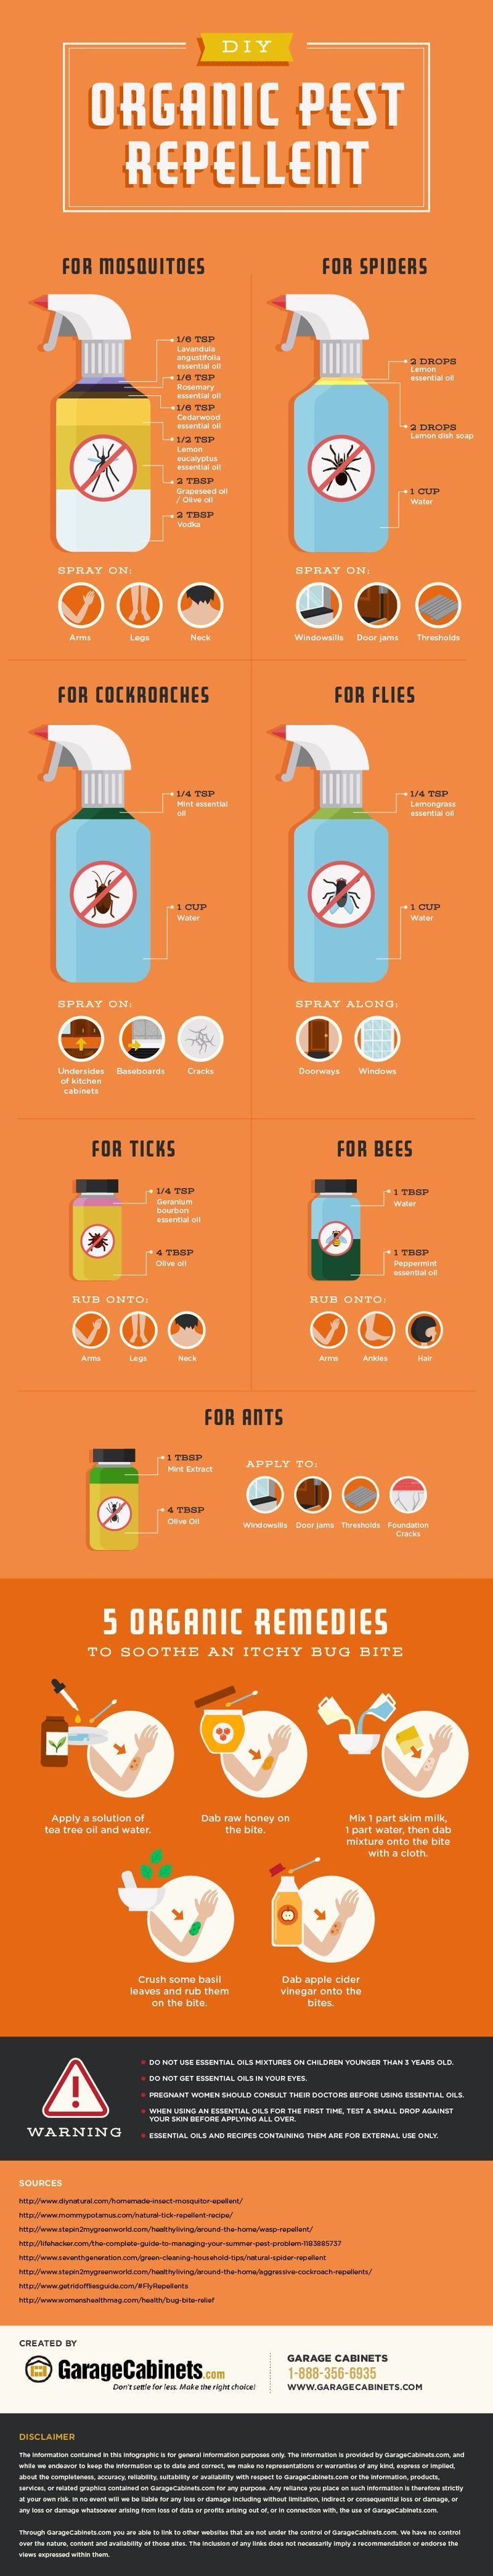 DIY Organic Repellant: How to Keep Bugs Out of Your House and Off Your Skin This Summer   ecogreenlove